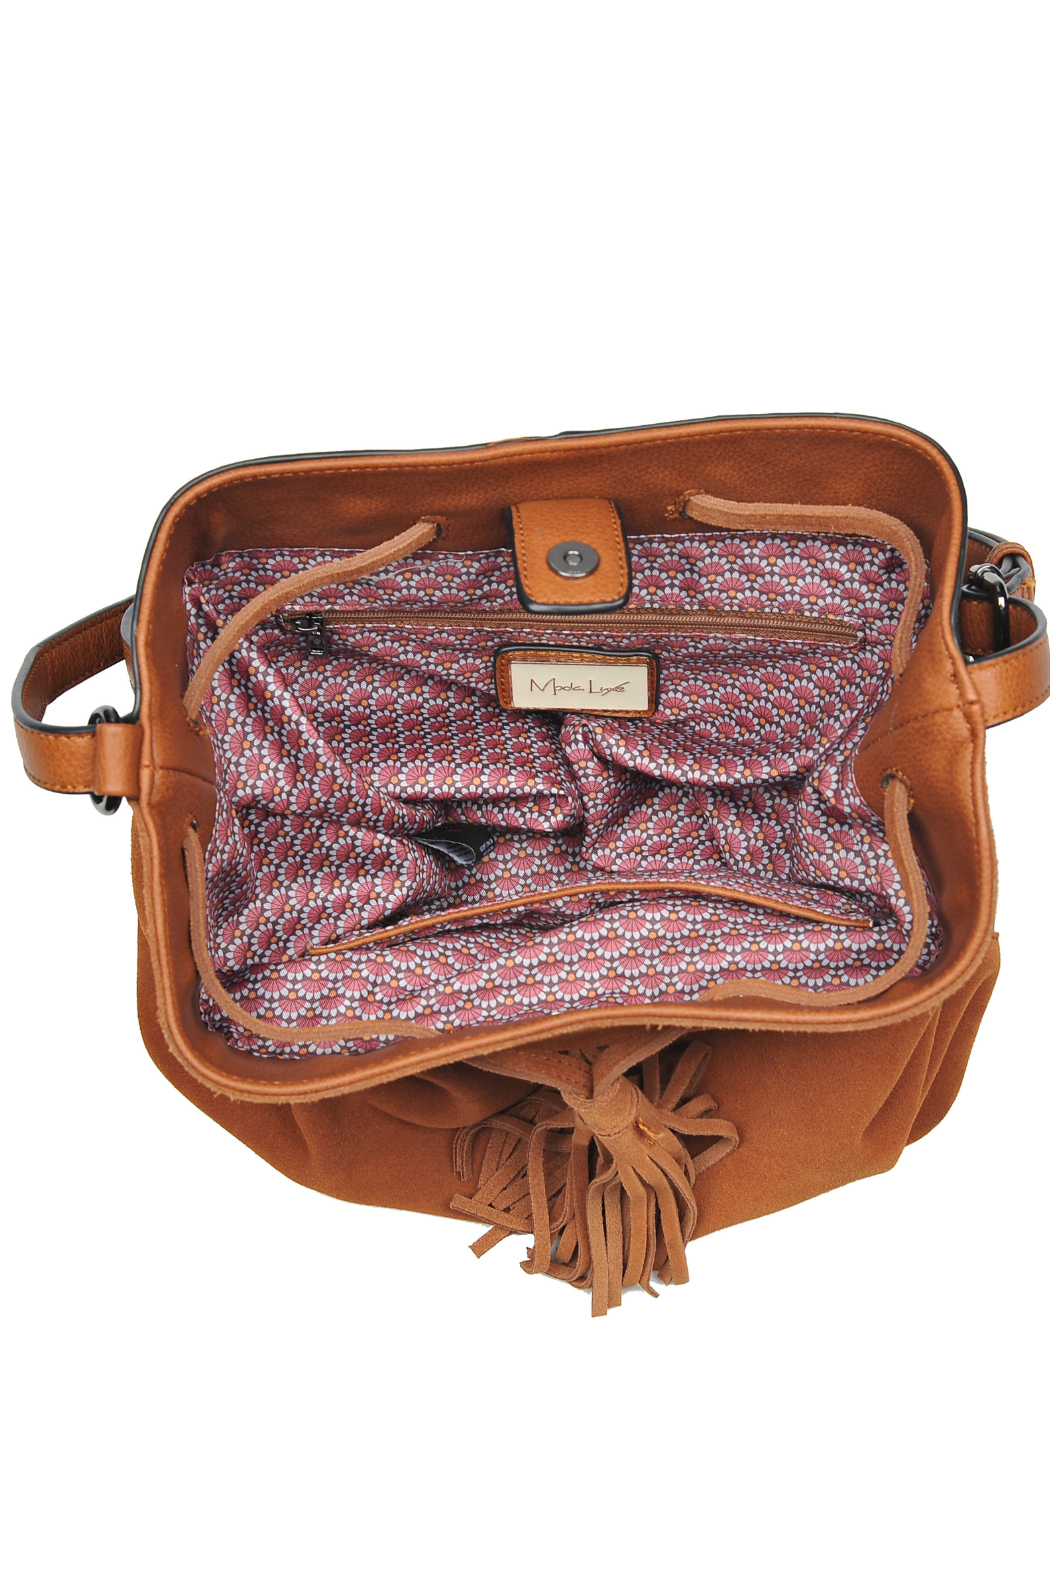 Moda Luxe April Bag with tassel - Side Cropped Image